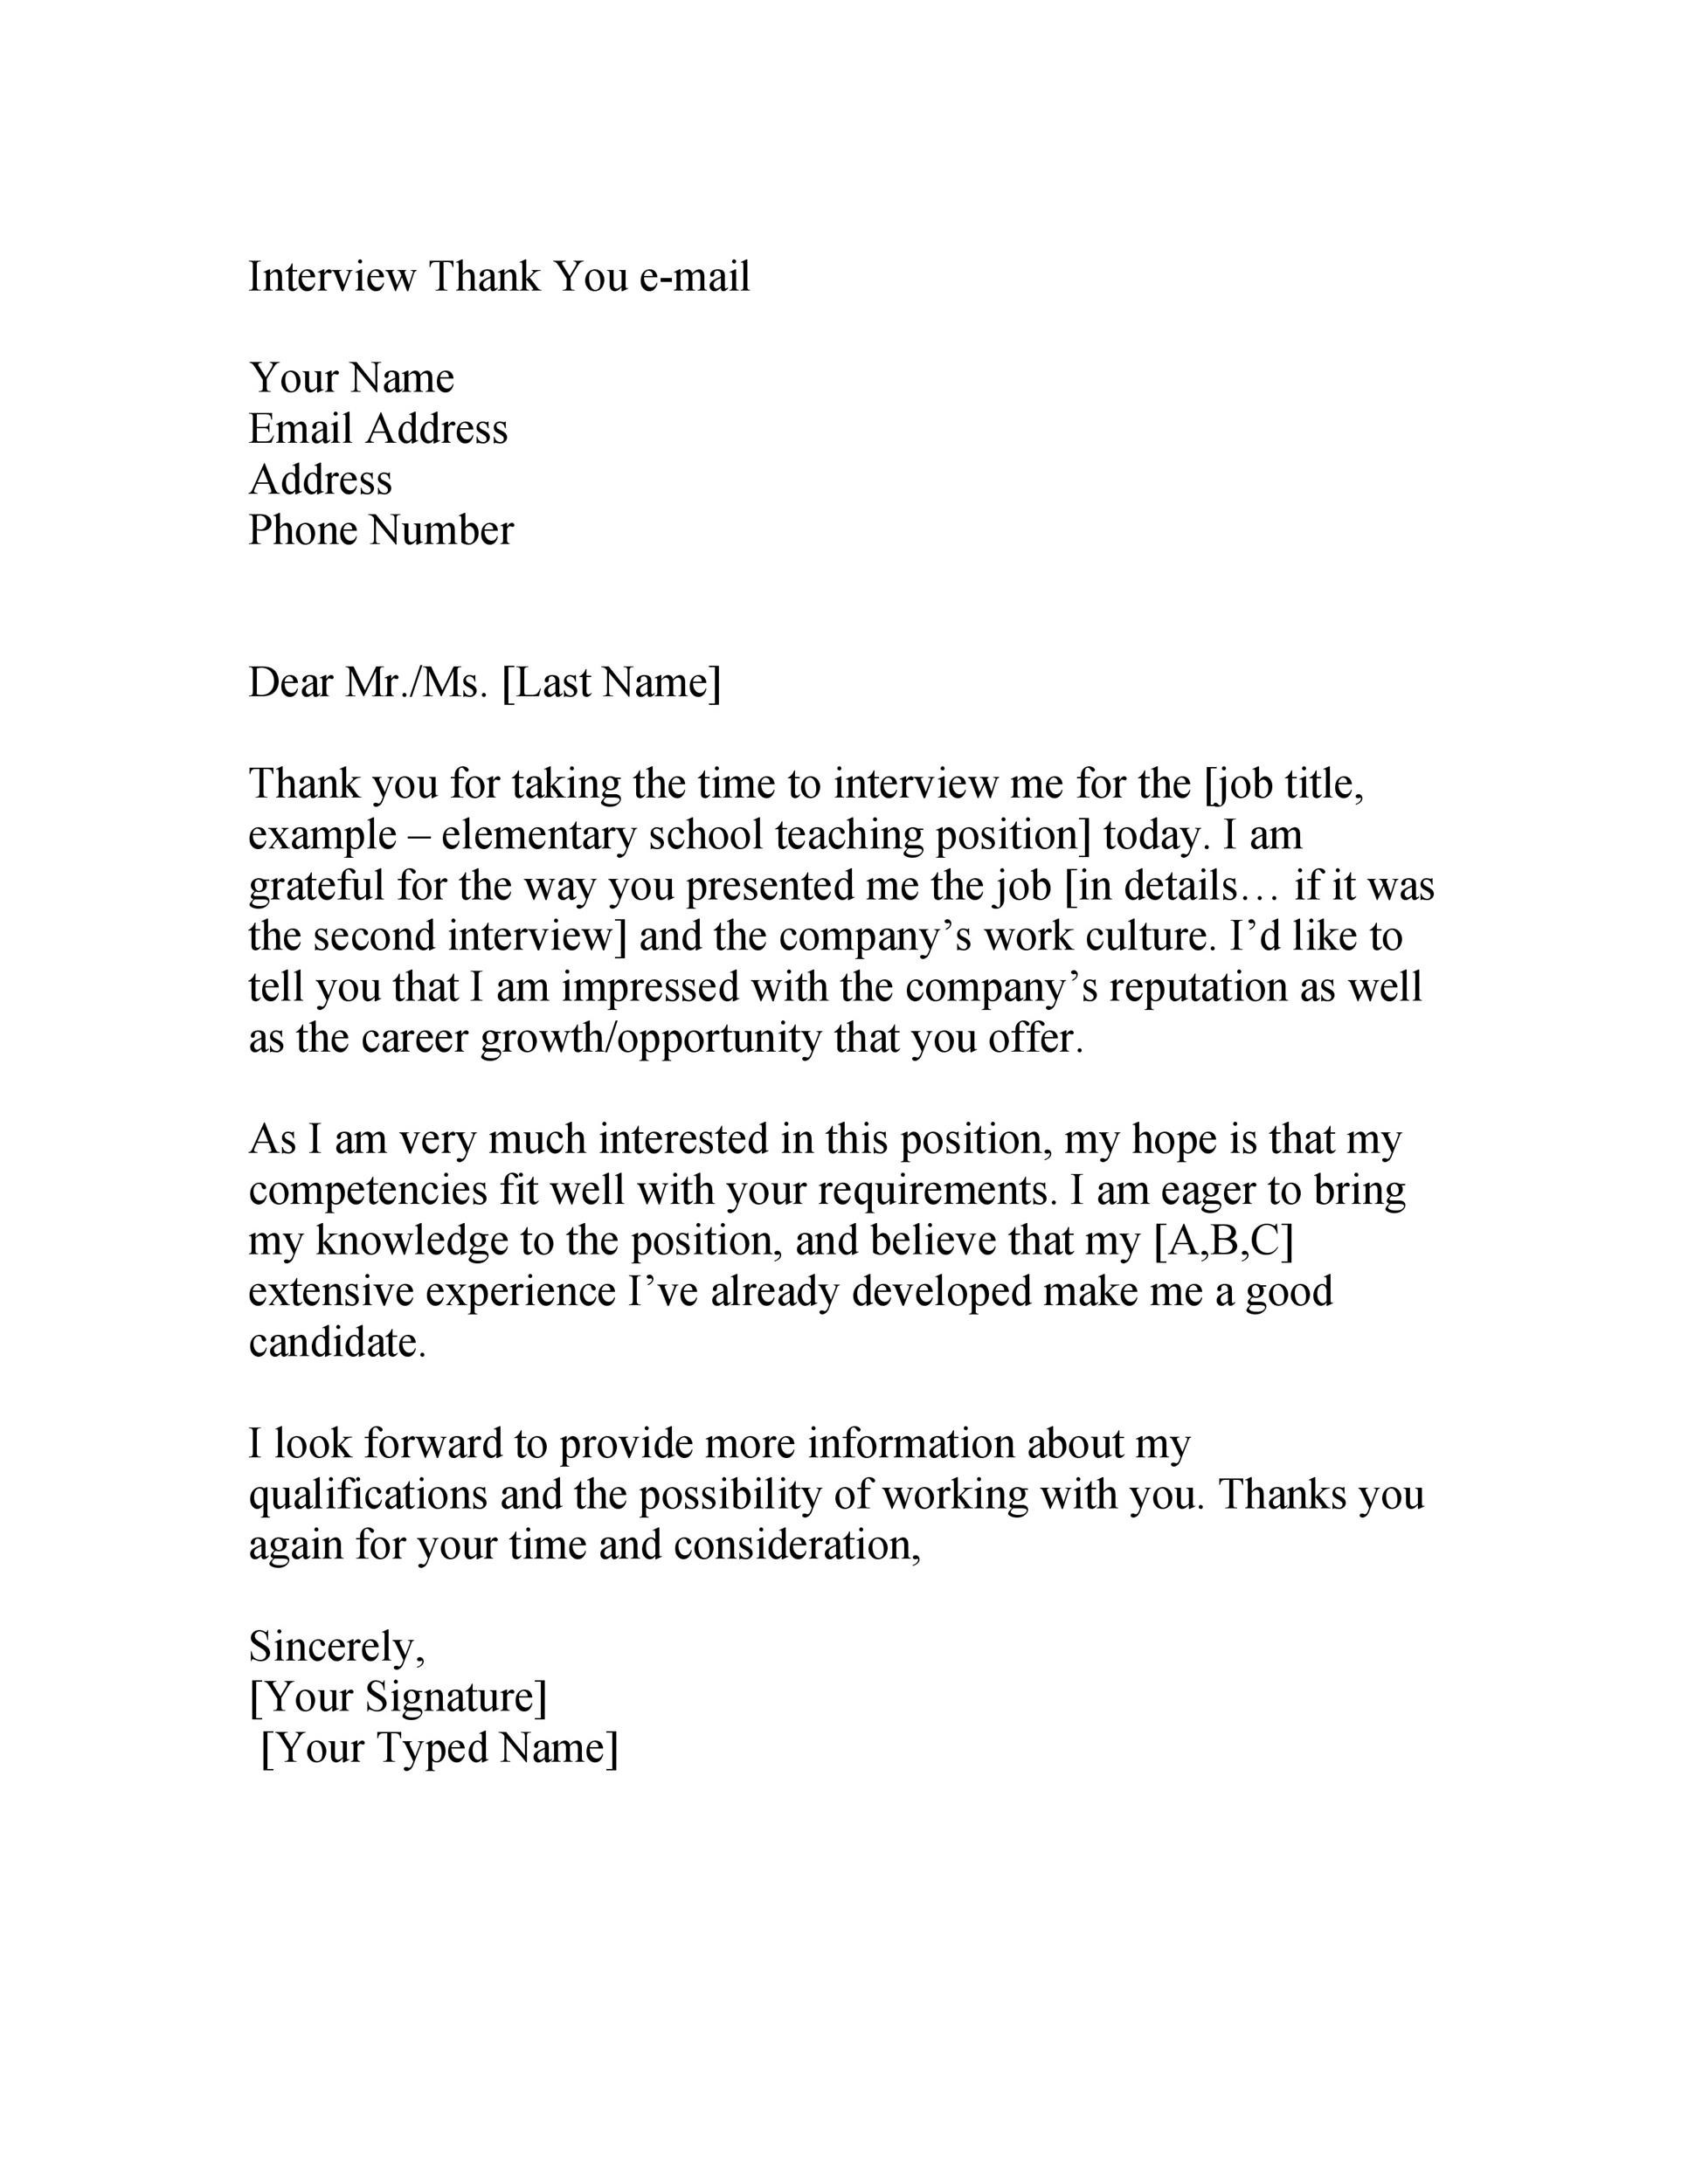 Interview Thank You Letter Examples from templatelab.com